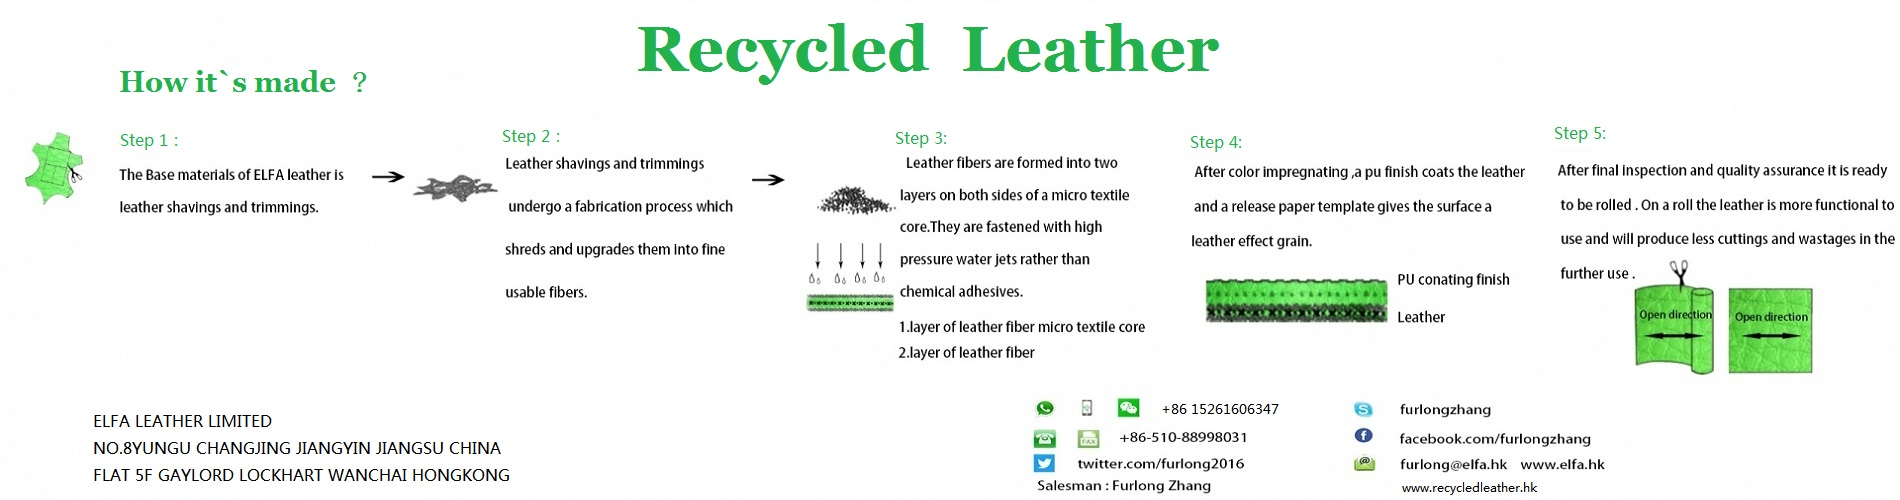 recycled leather firm